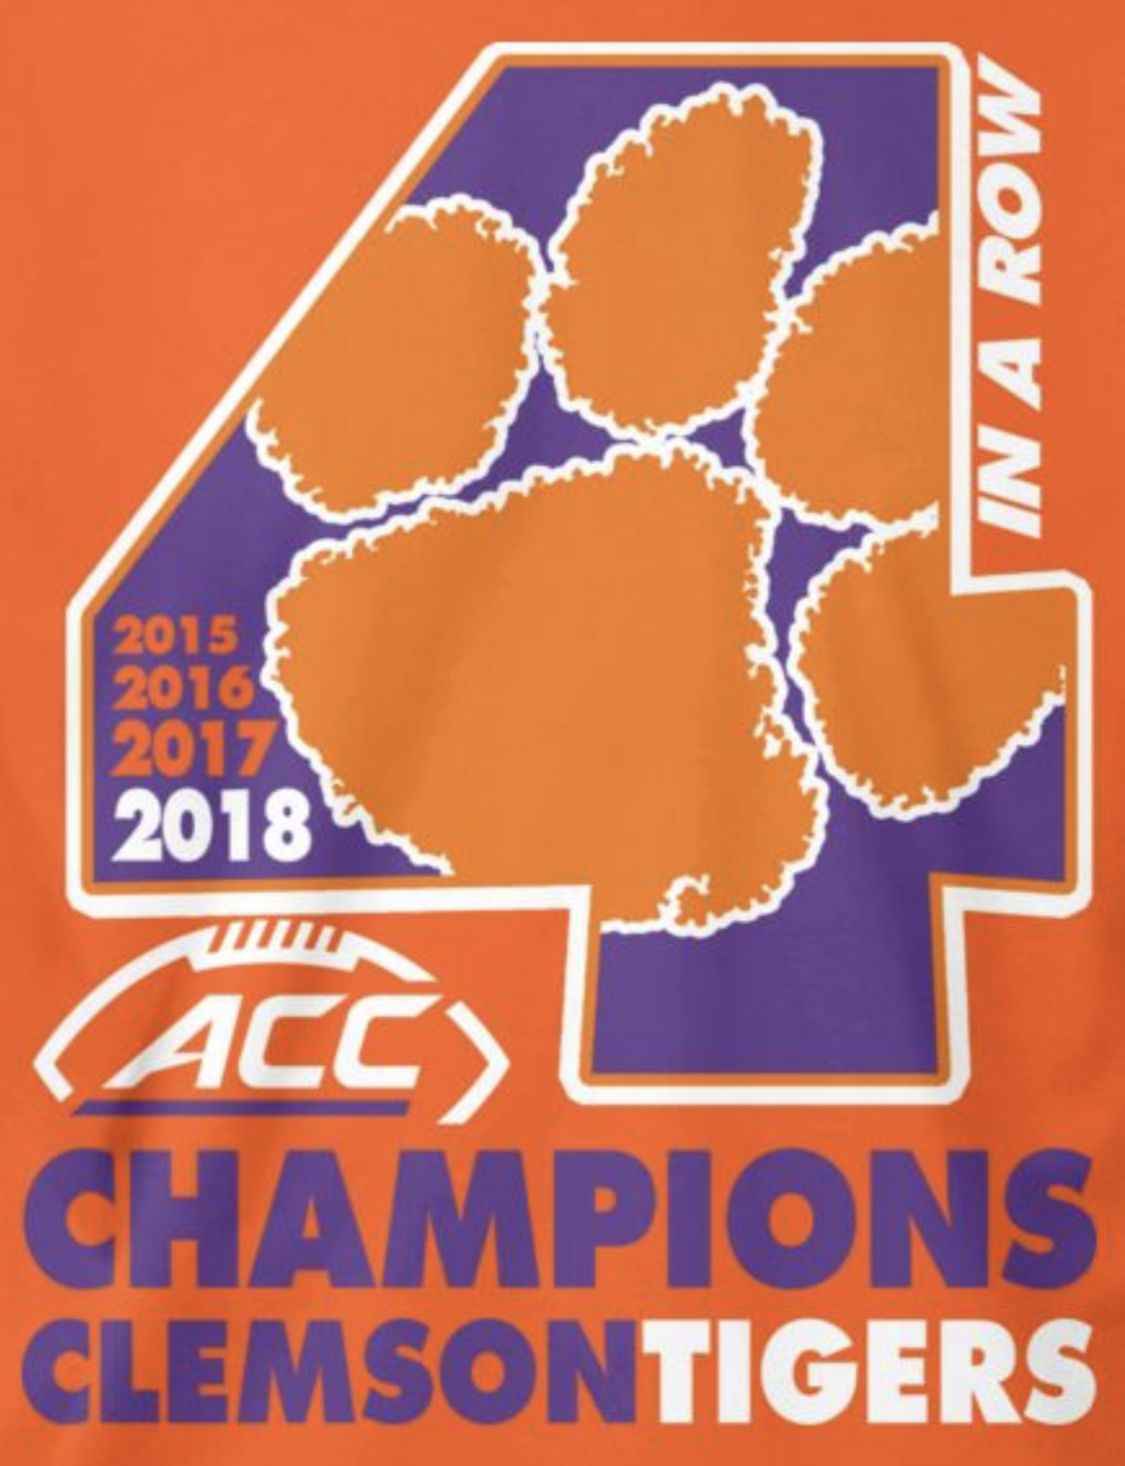 Four Straight Acc Championships Go Tigers Clemson Tigers Football Clemson Tailgating Clemson Football